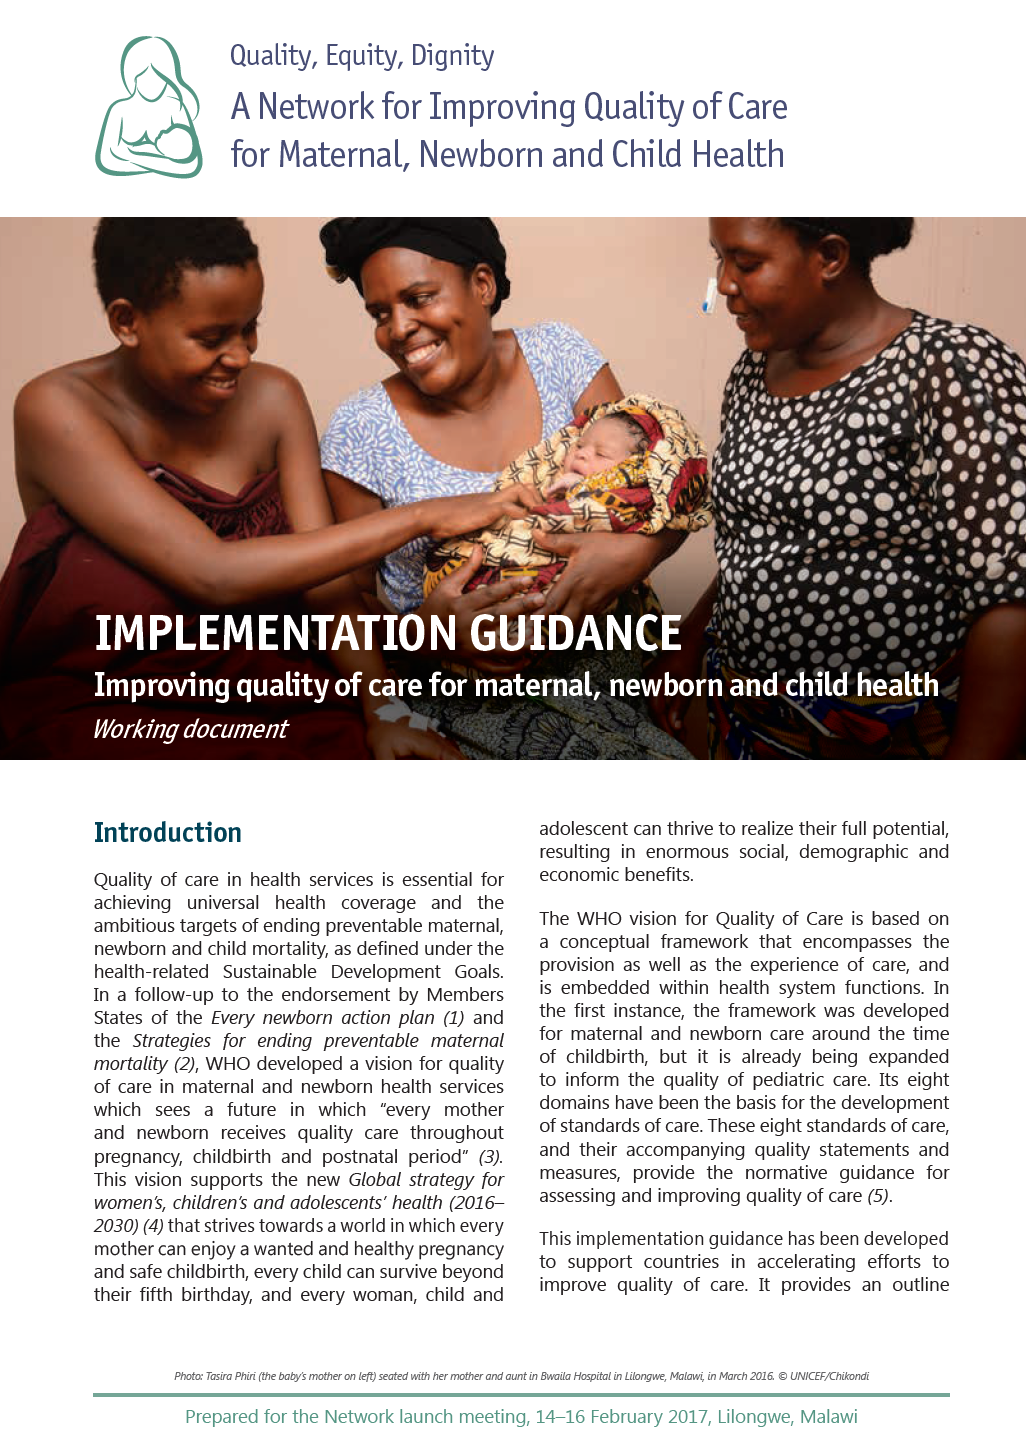 implementation guidance brief 6